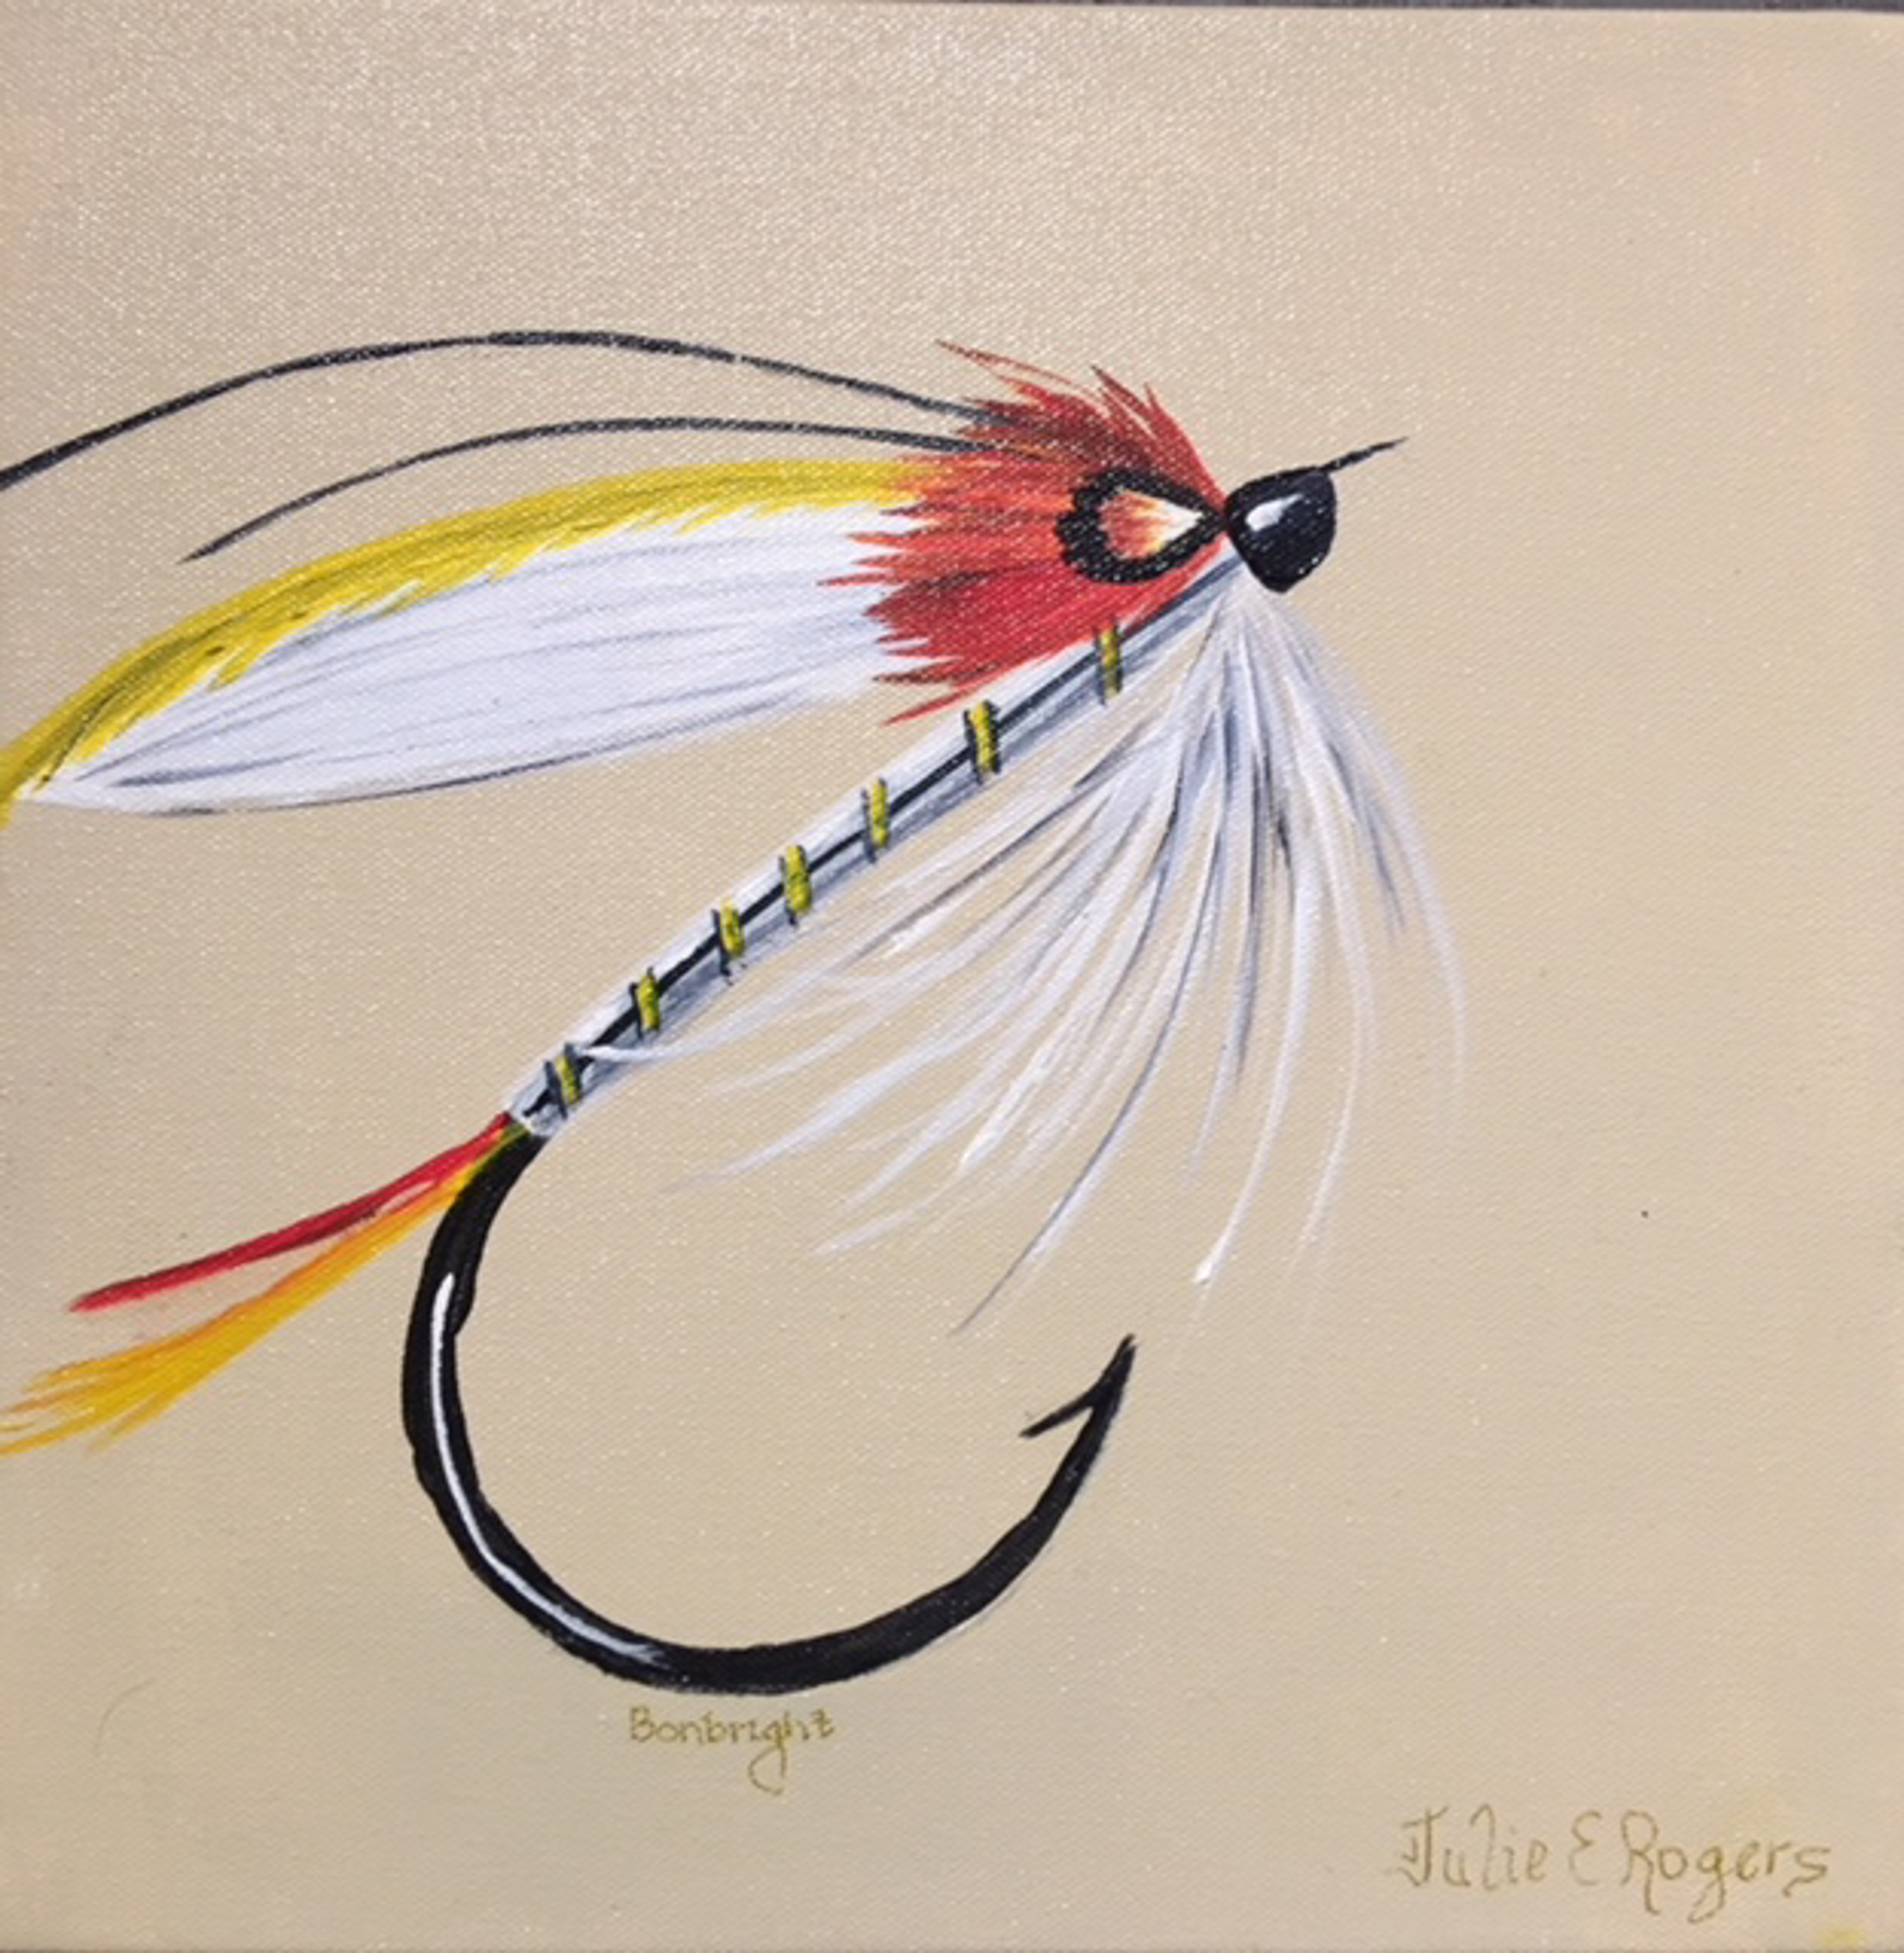 Bon Bright Wet fly by Julie Rogers